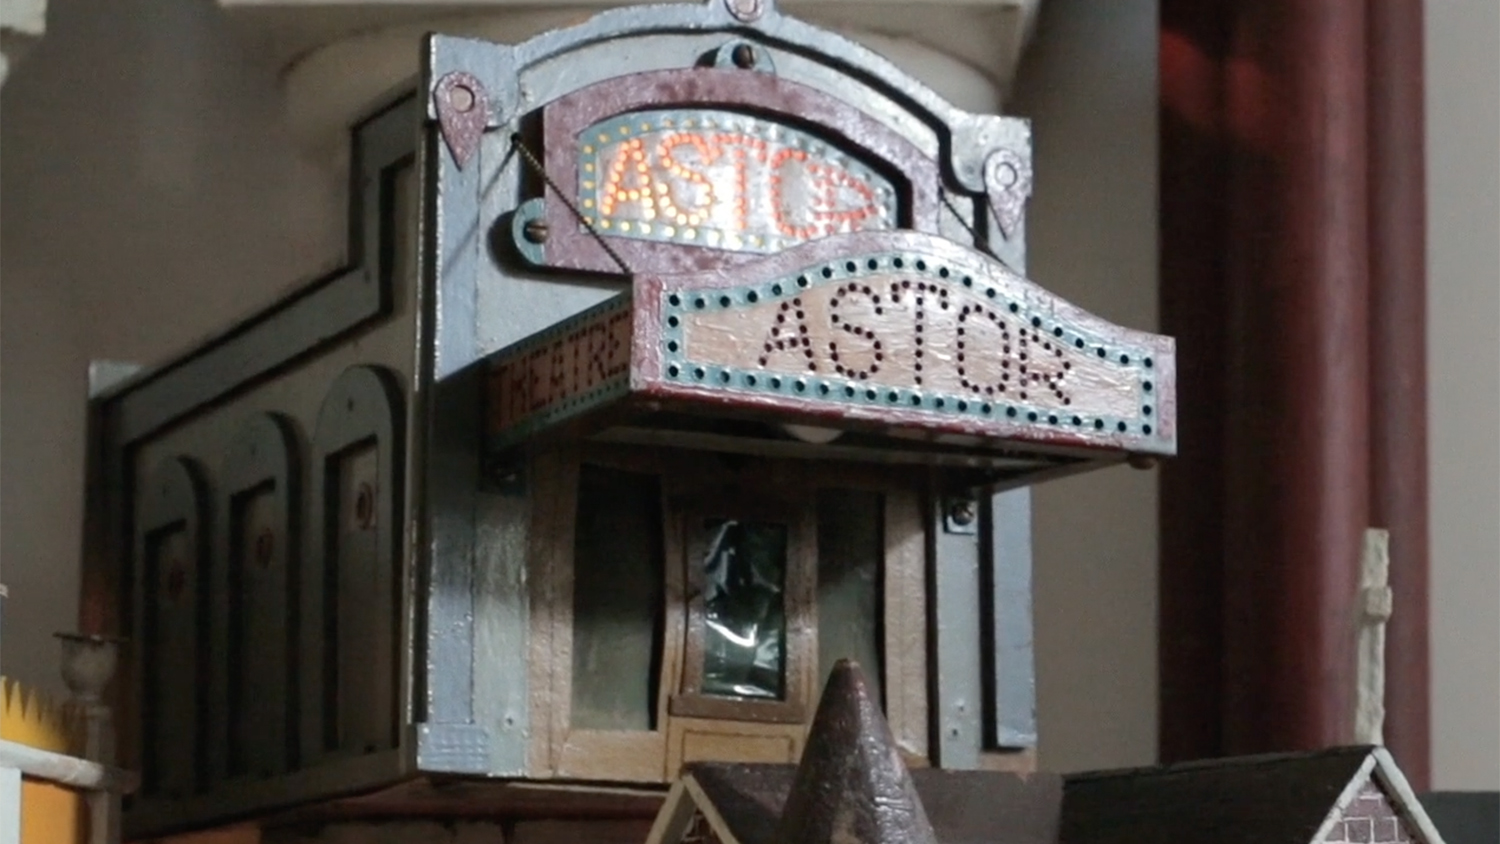 miniature rendition of Astor Theater